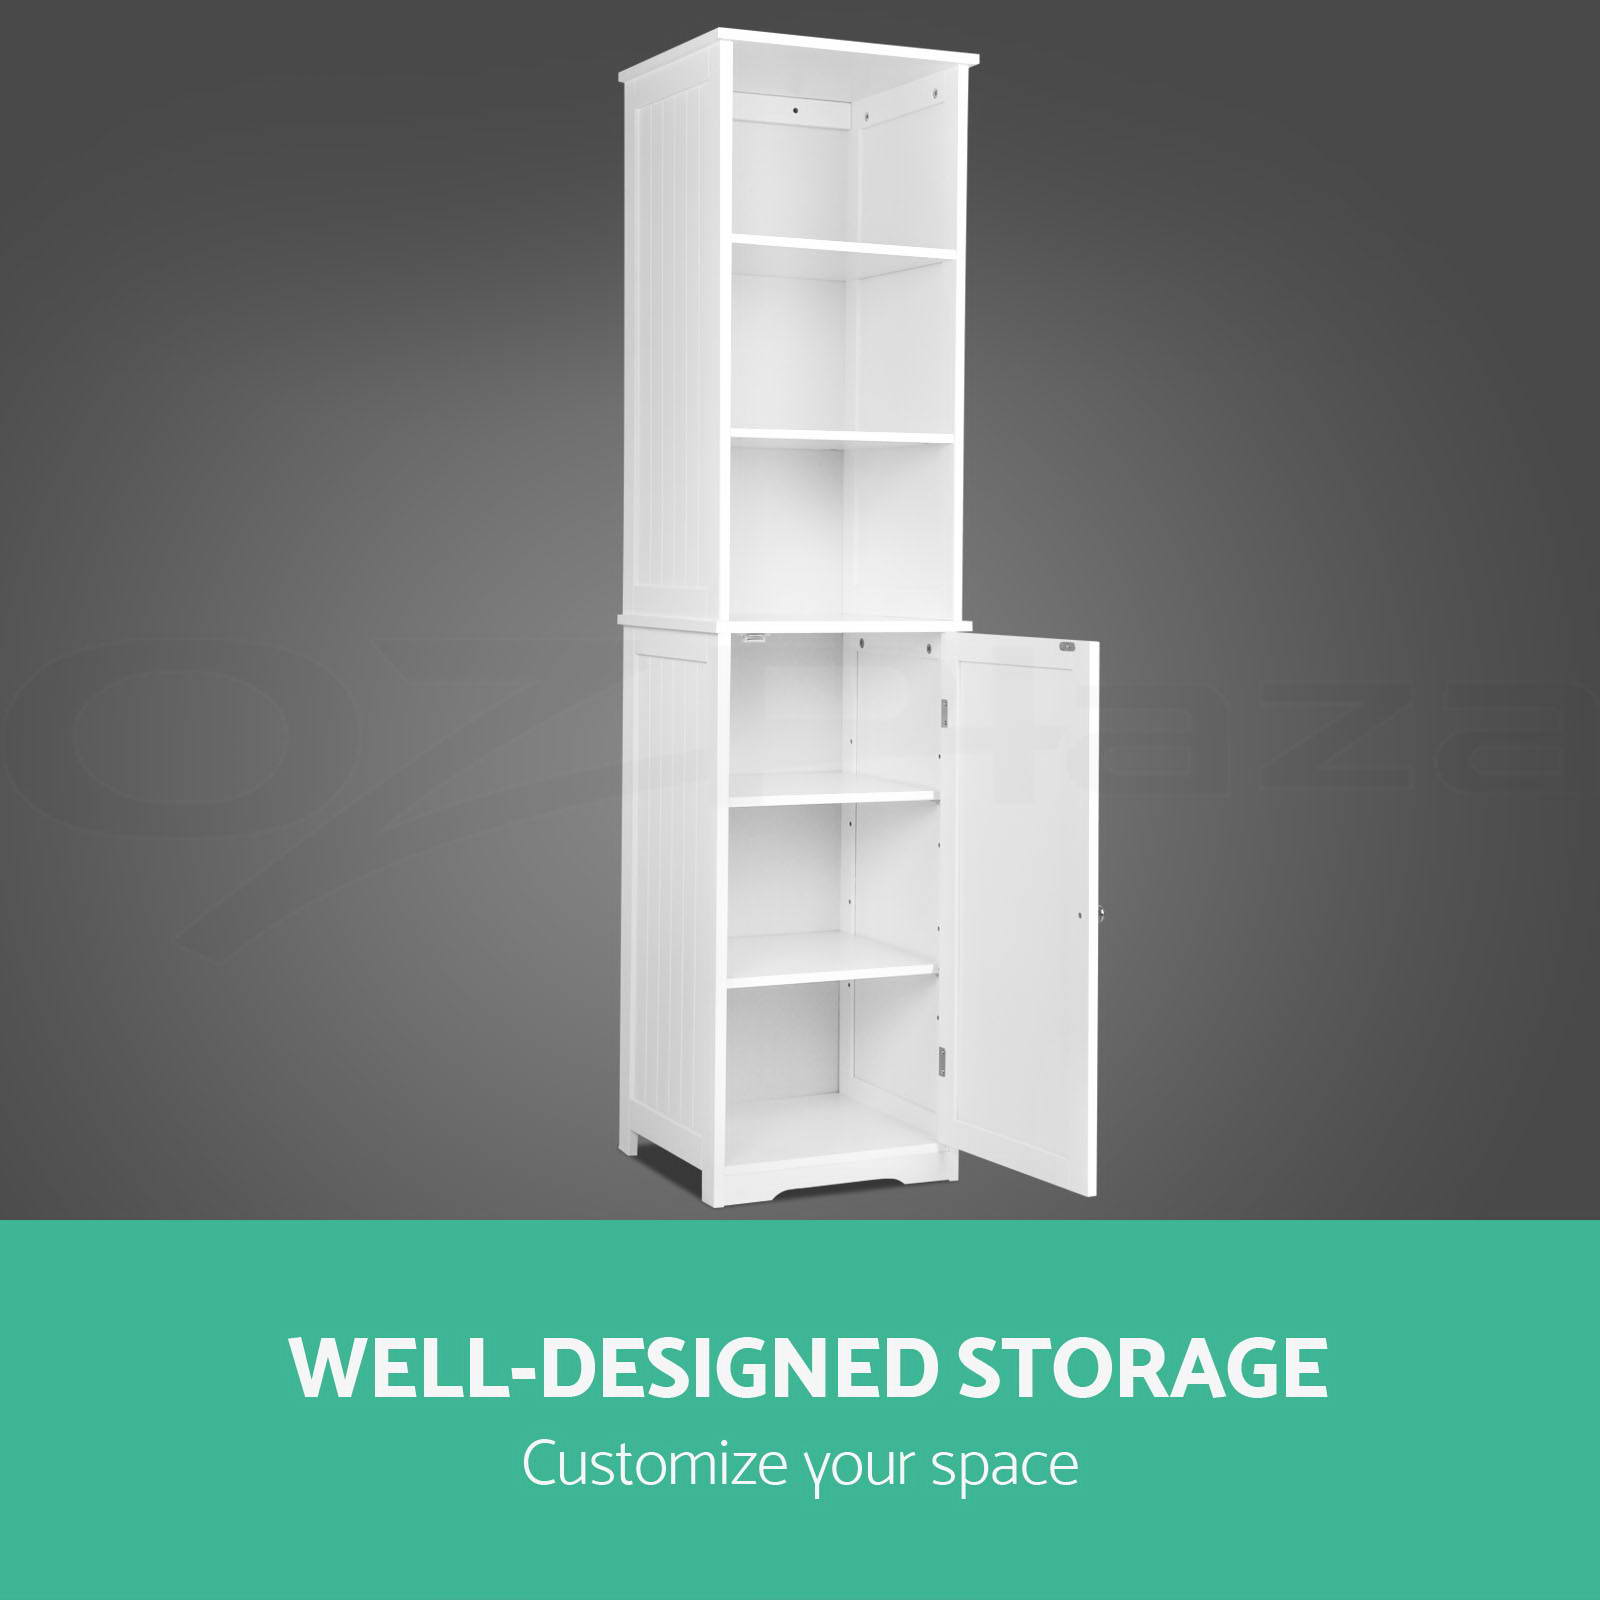 Bathroom tallboy furniture toilet storage cabinet laundry for Bathroom cabinets ebay australia